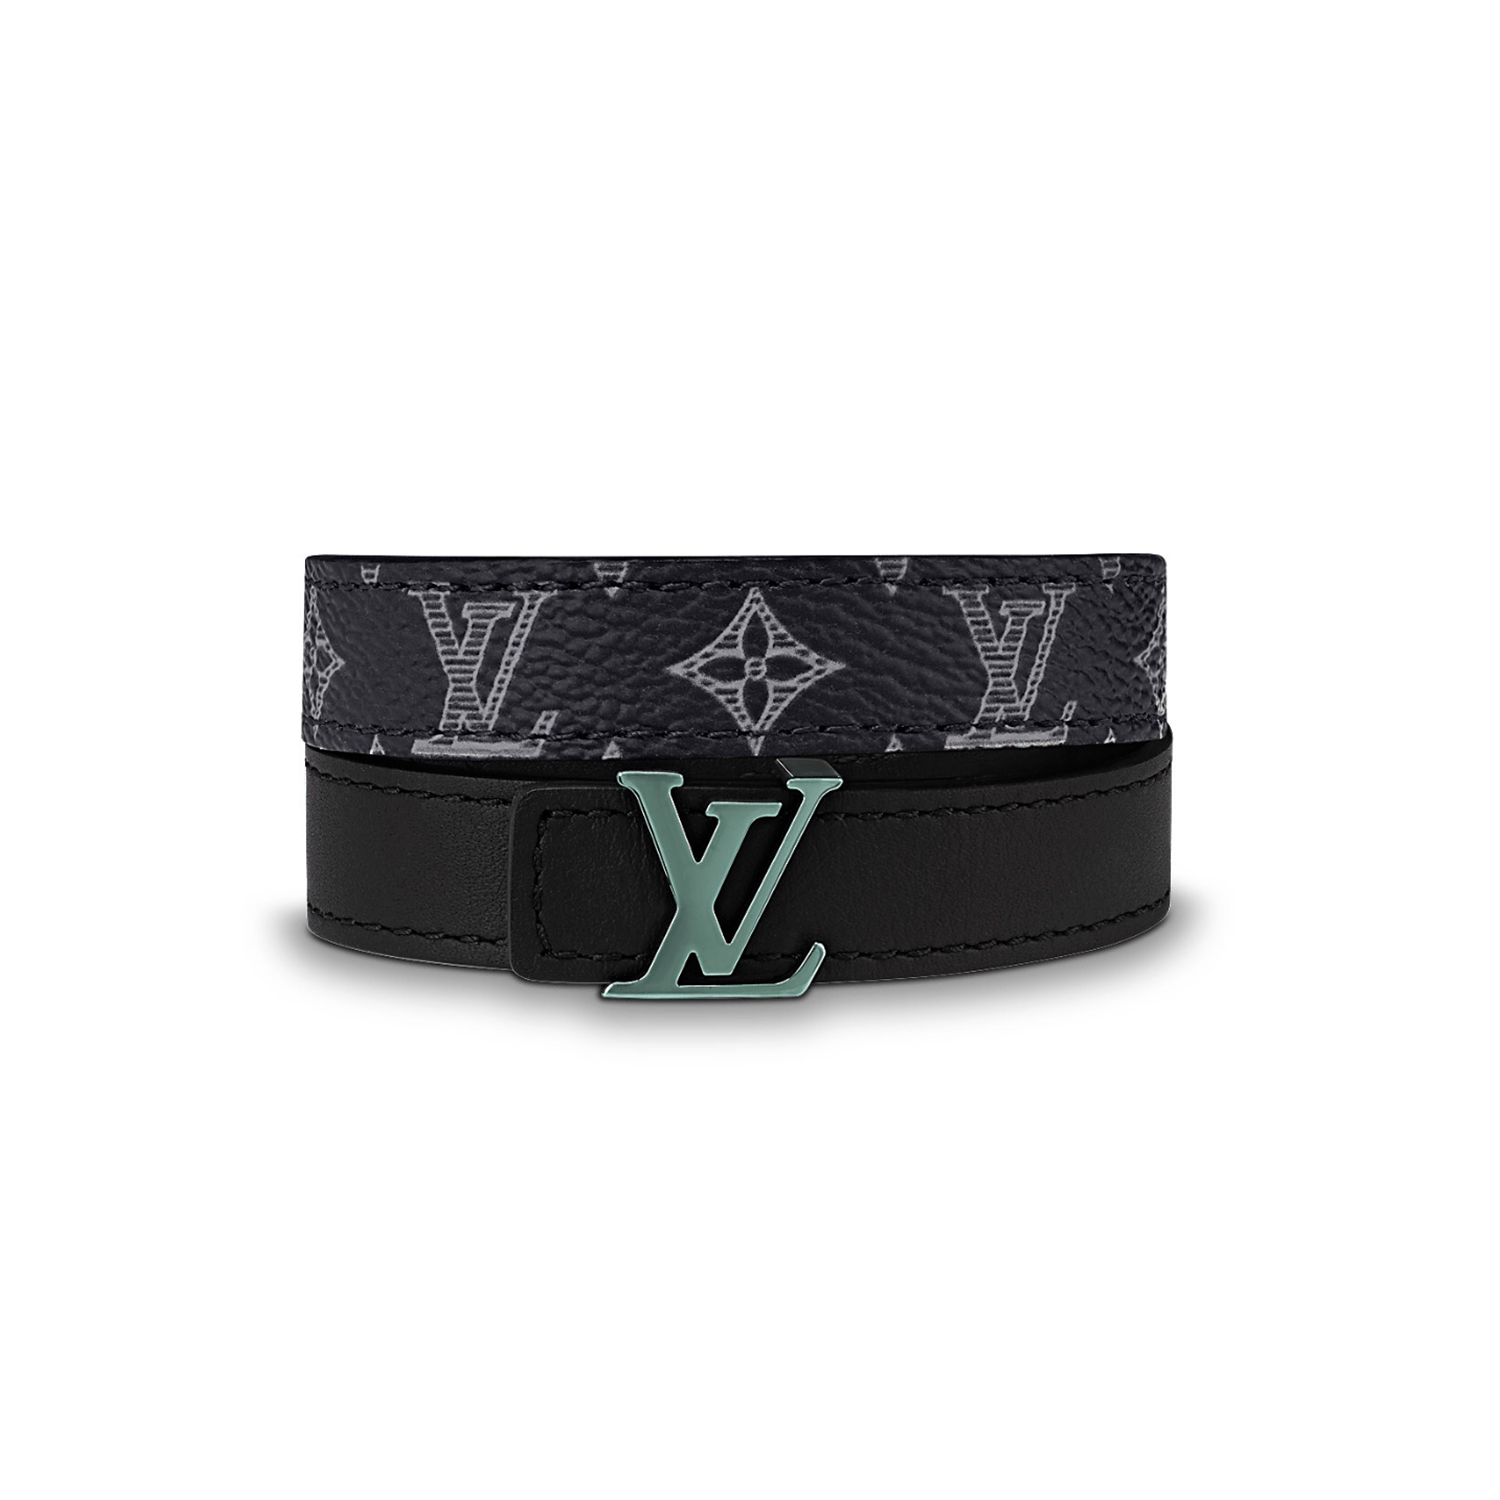 INITIALES 14MM REVERSIBLE BRACELET - €275 $405M6428DMONOGRAM INK BLACK